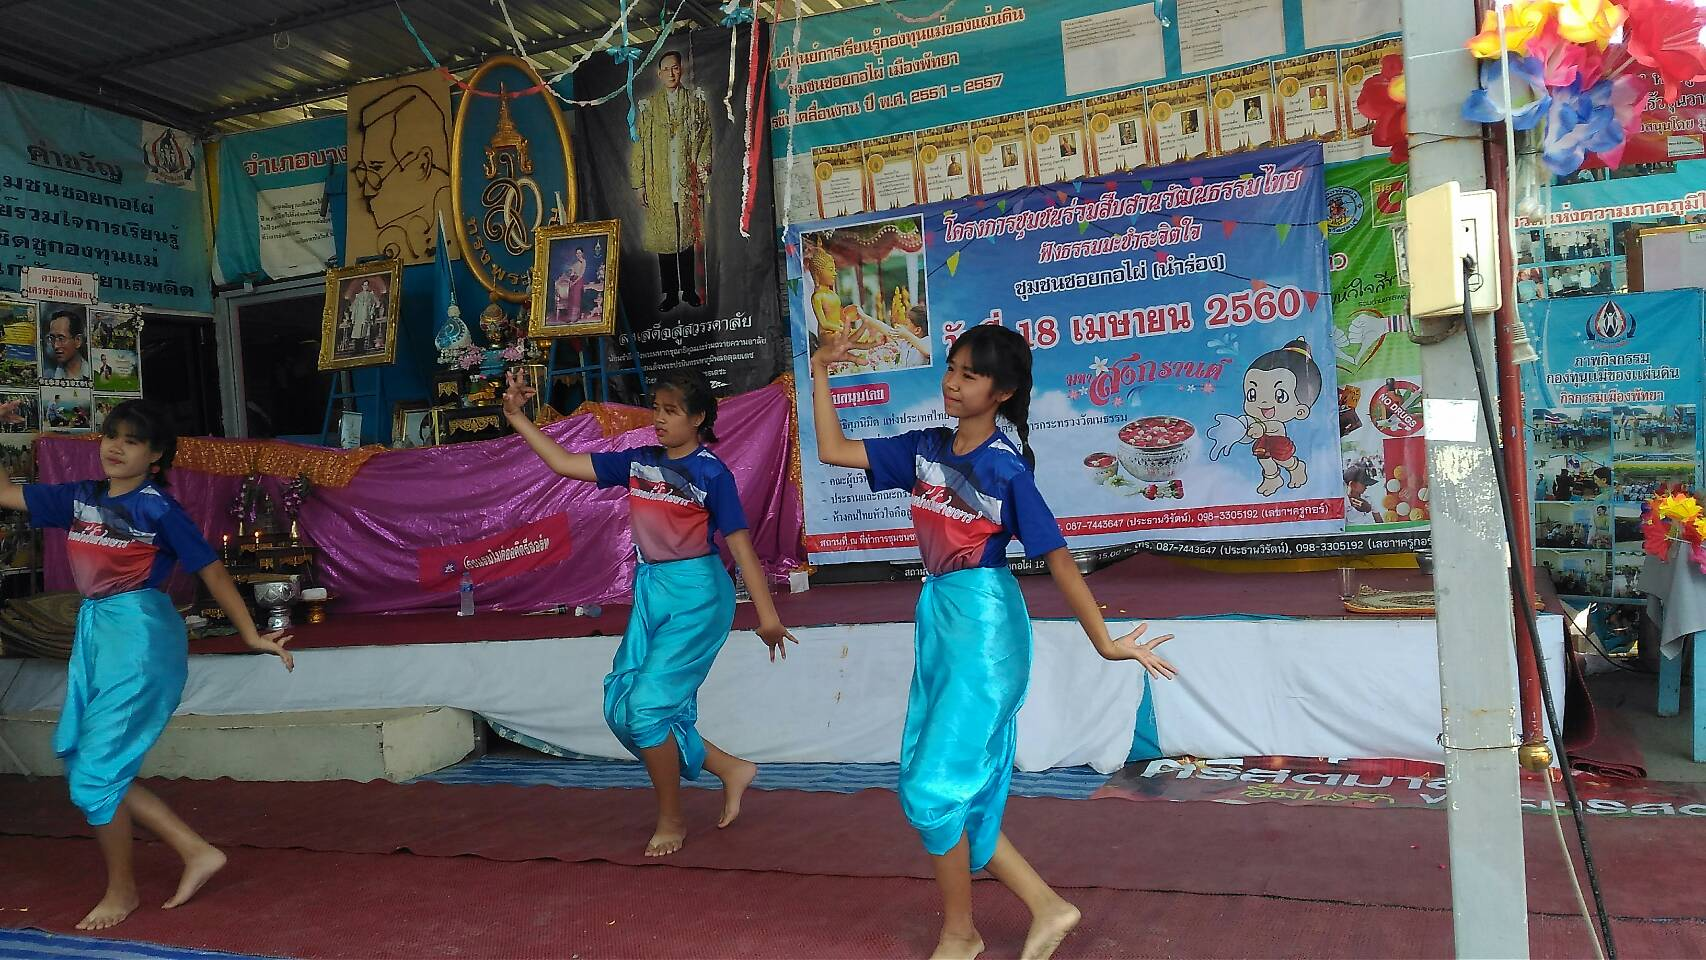 The Kophai and Chumsai communities also featured traditional Thai dance by some of the local students.